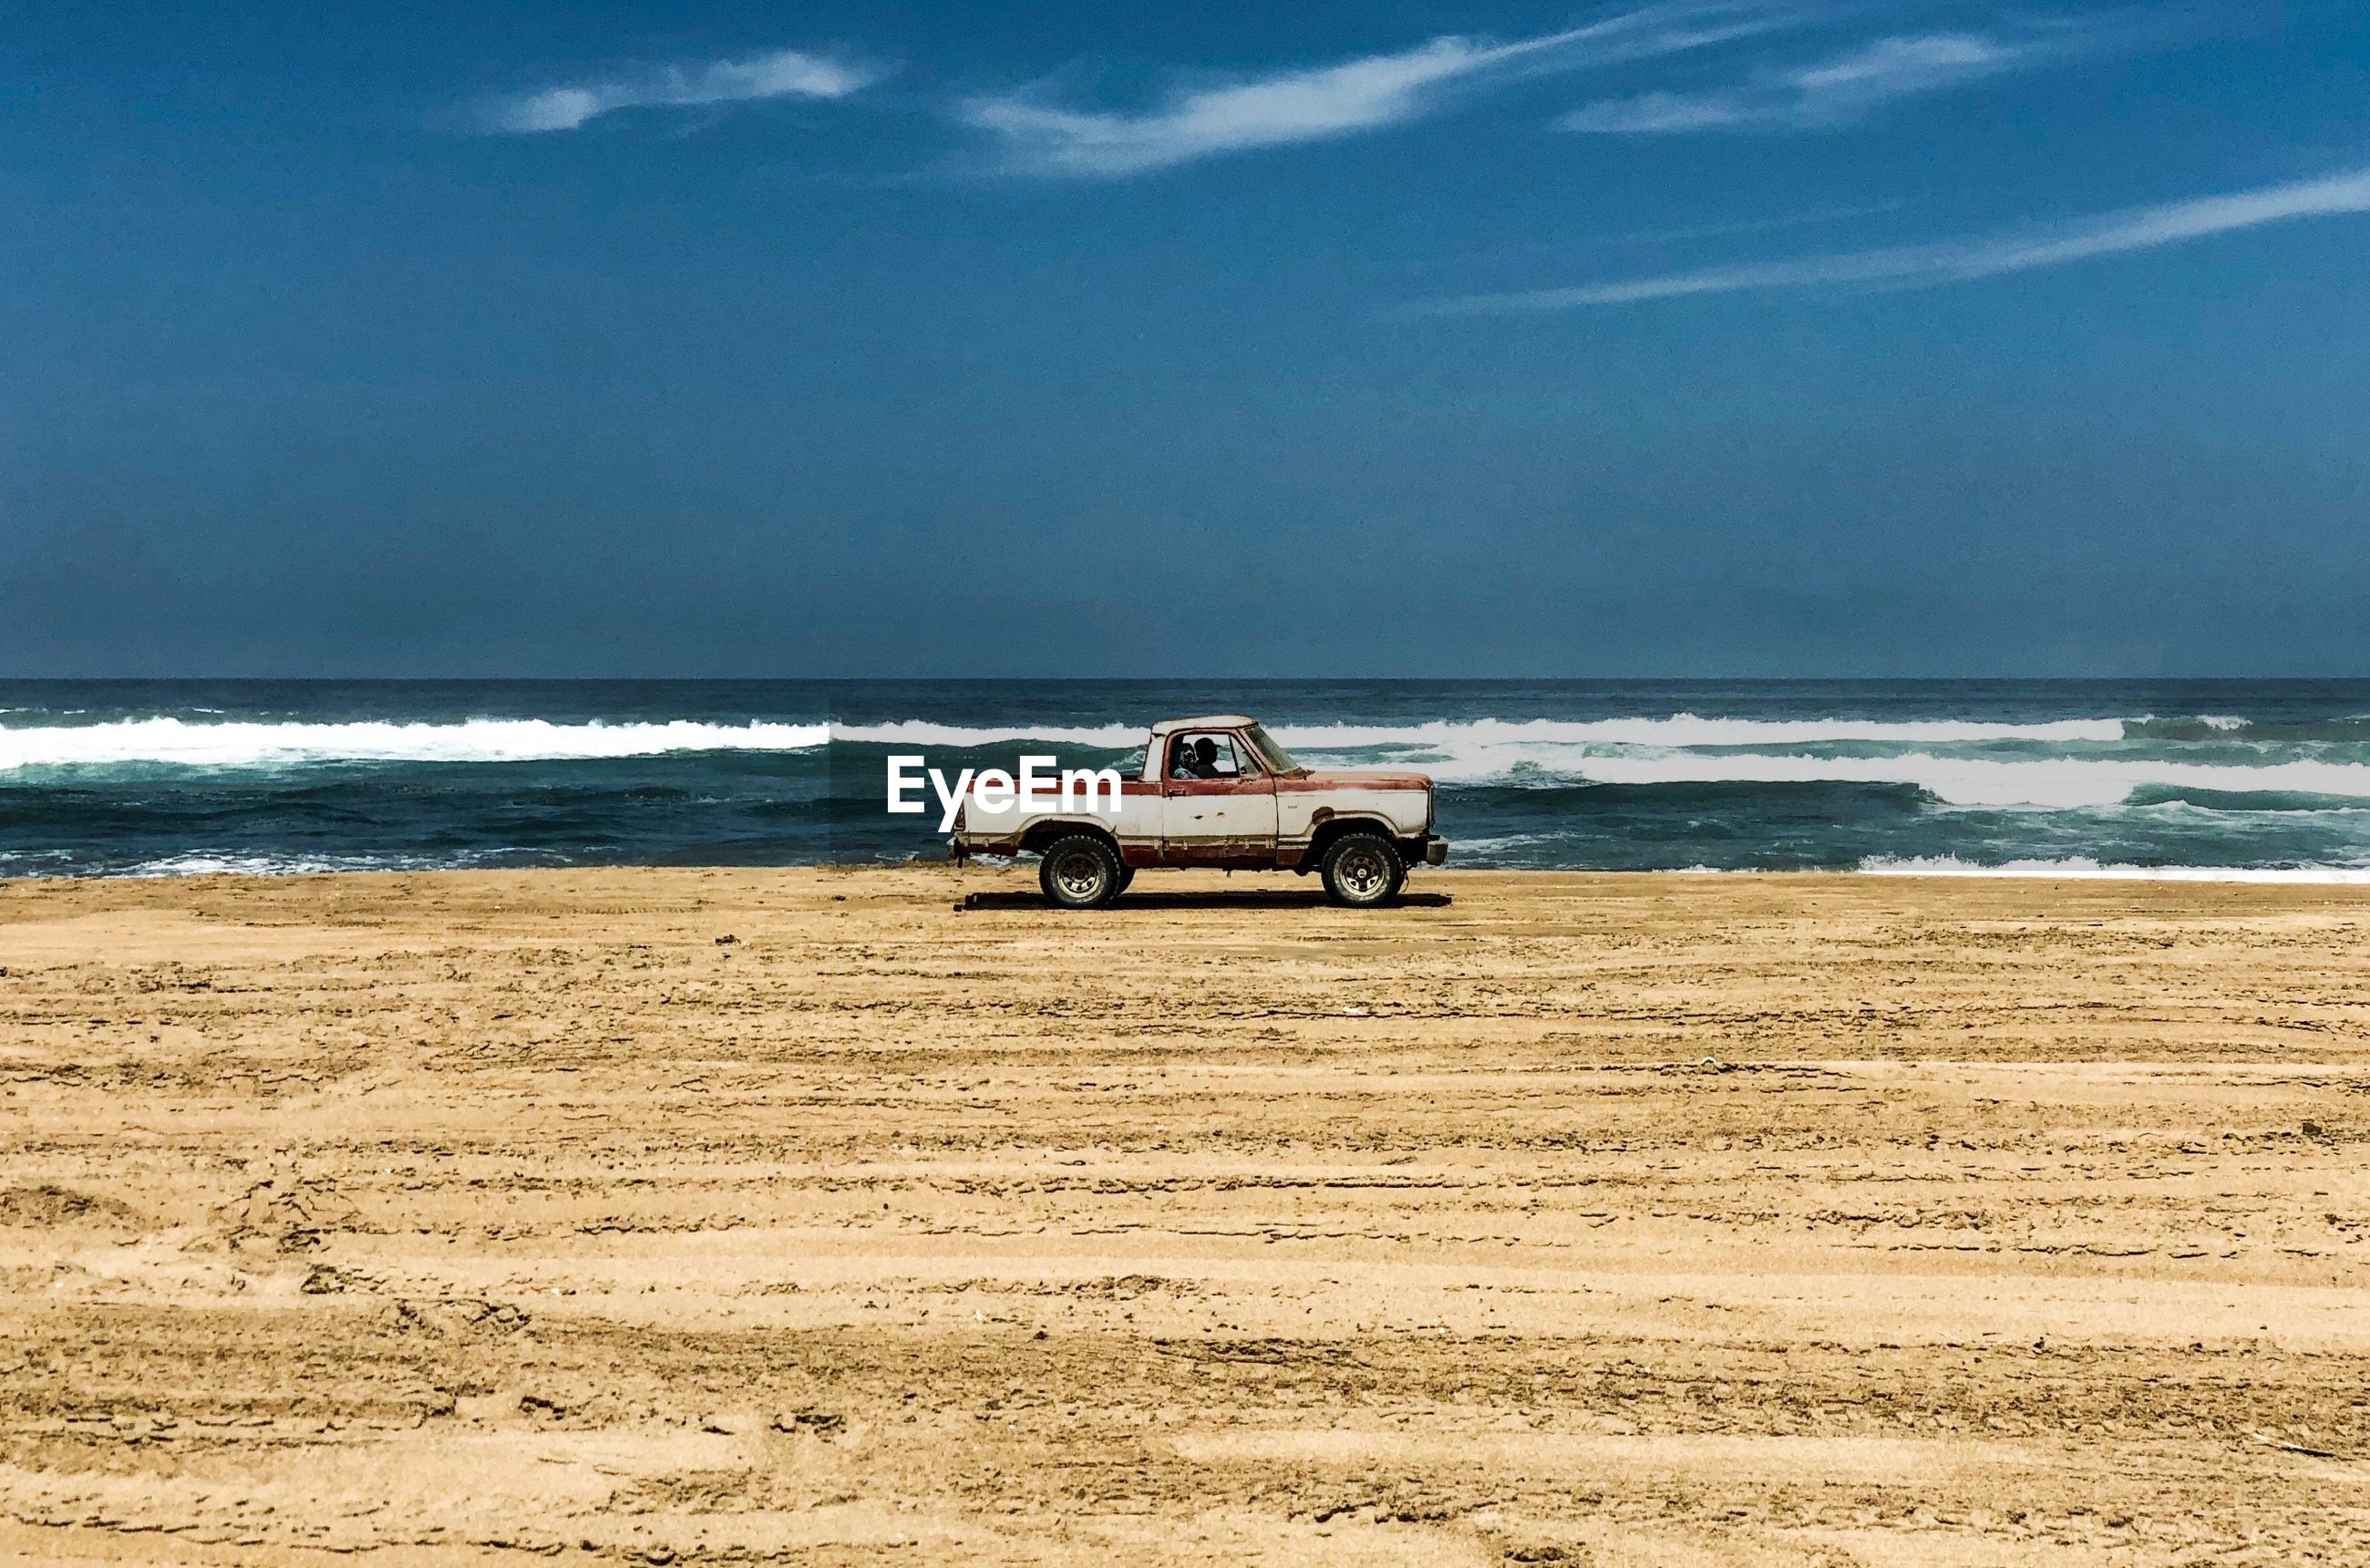 Pick-up truck moving on beach against blue sky during sunny day